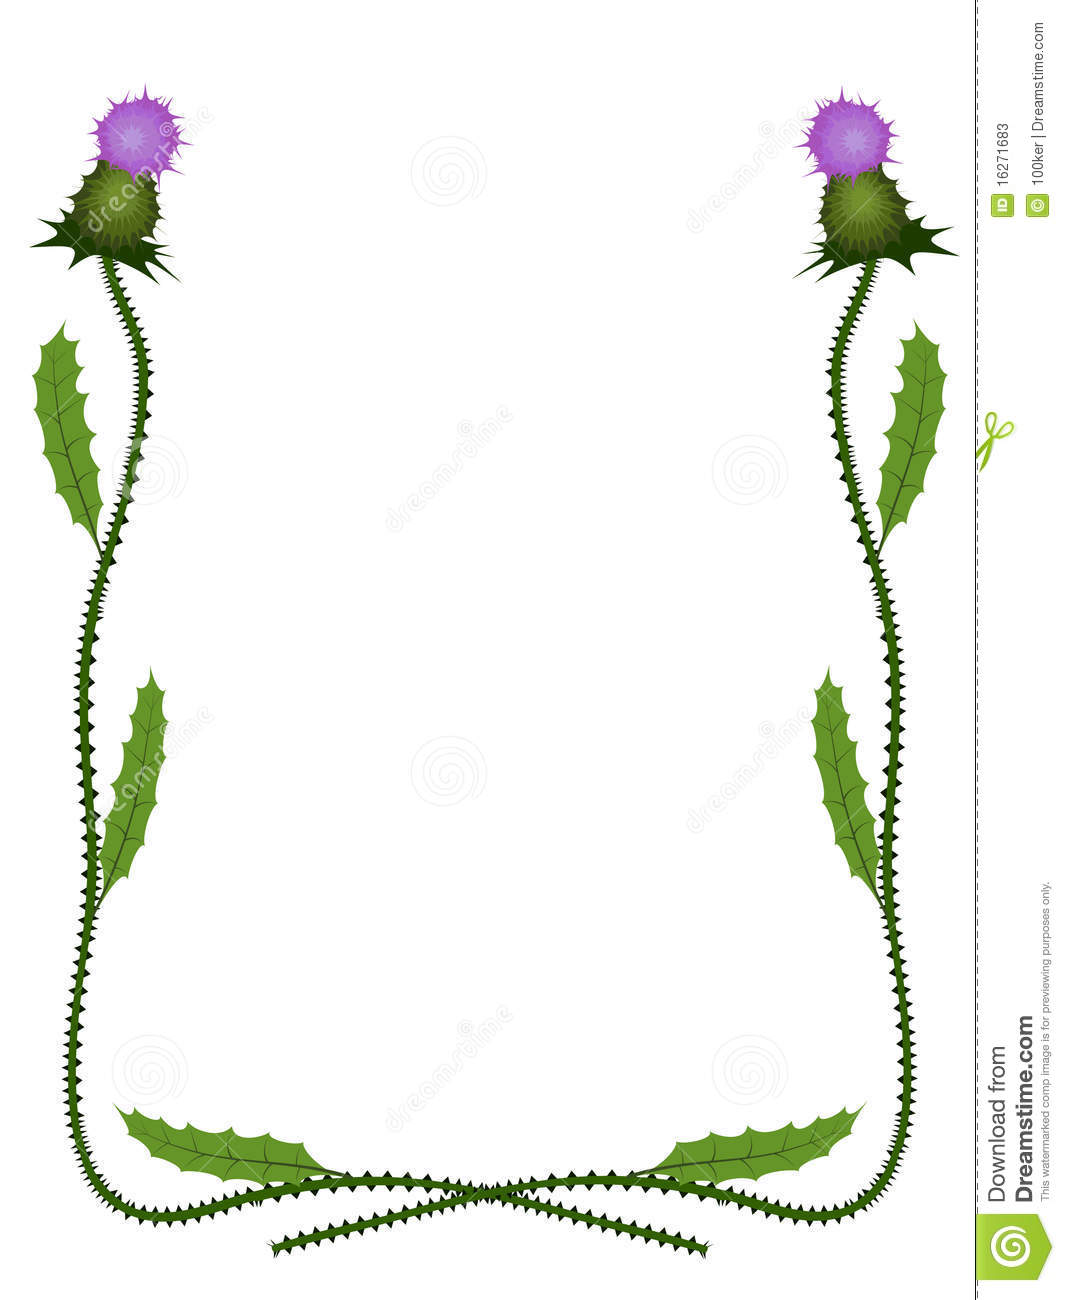 Scottish Thistle Clipart (97+ images in Collection) Page 2.